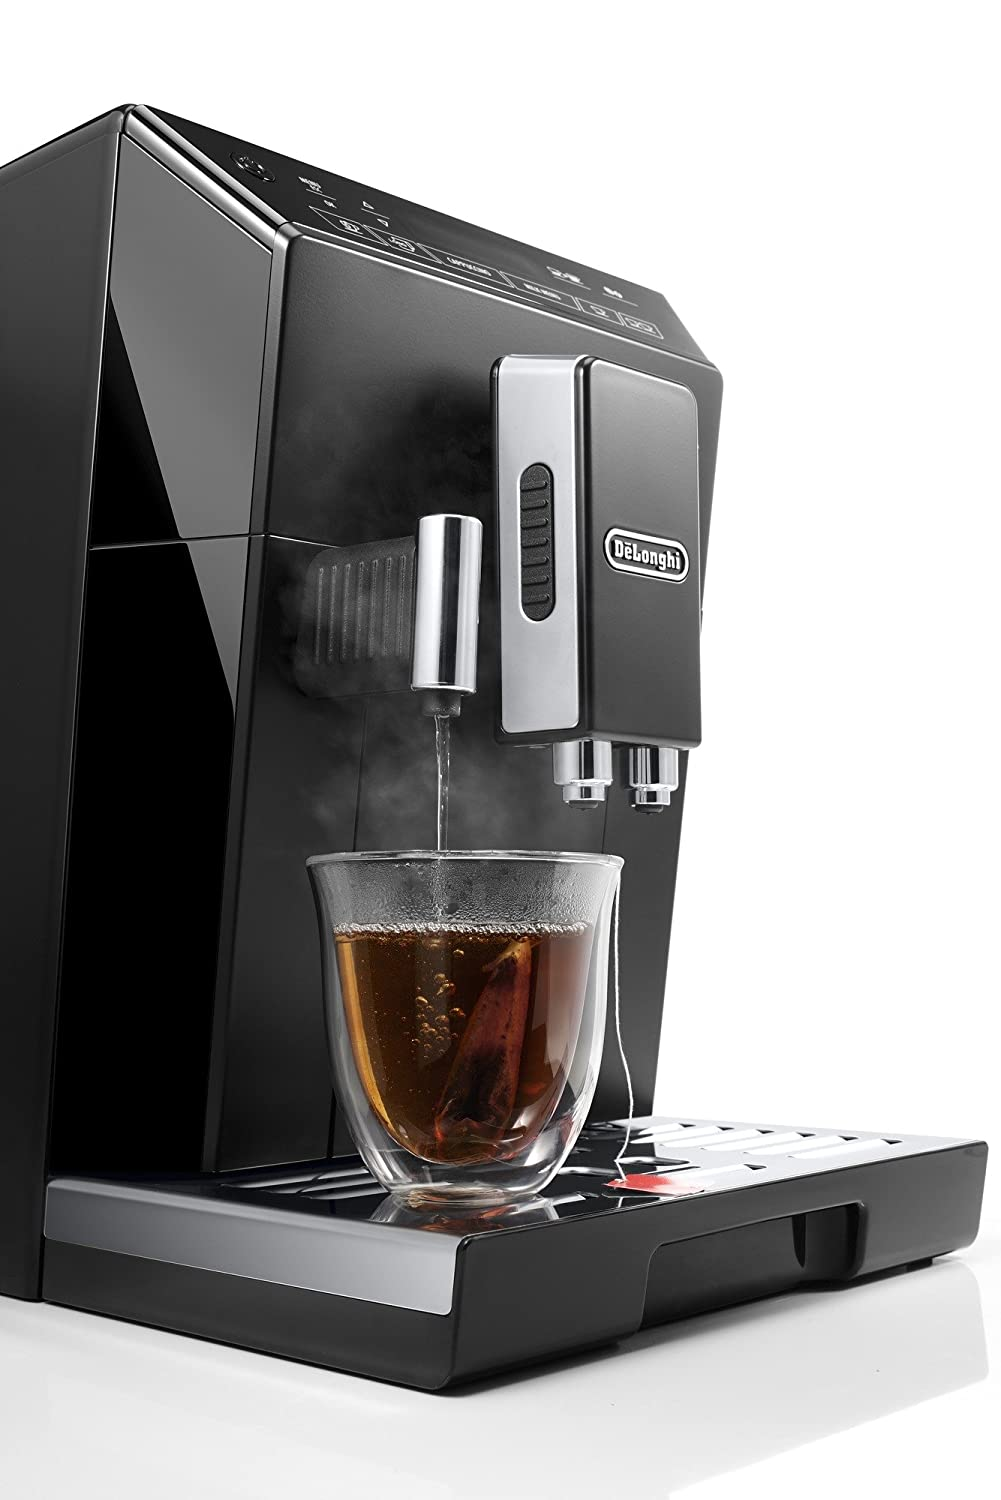 This De'Longhi bean to cup coffee machine is amazing to use but is quite expensive.